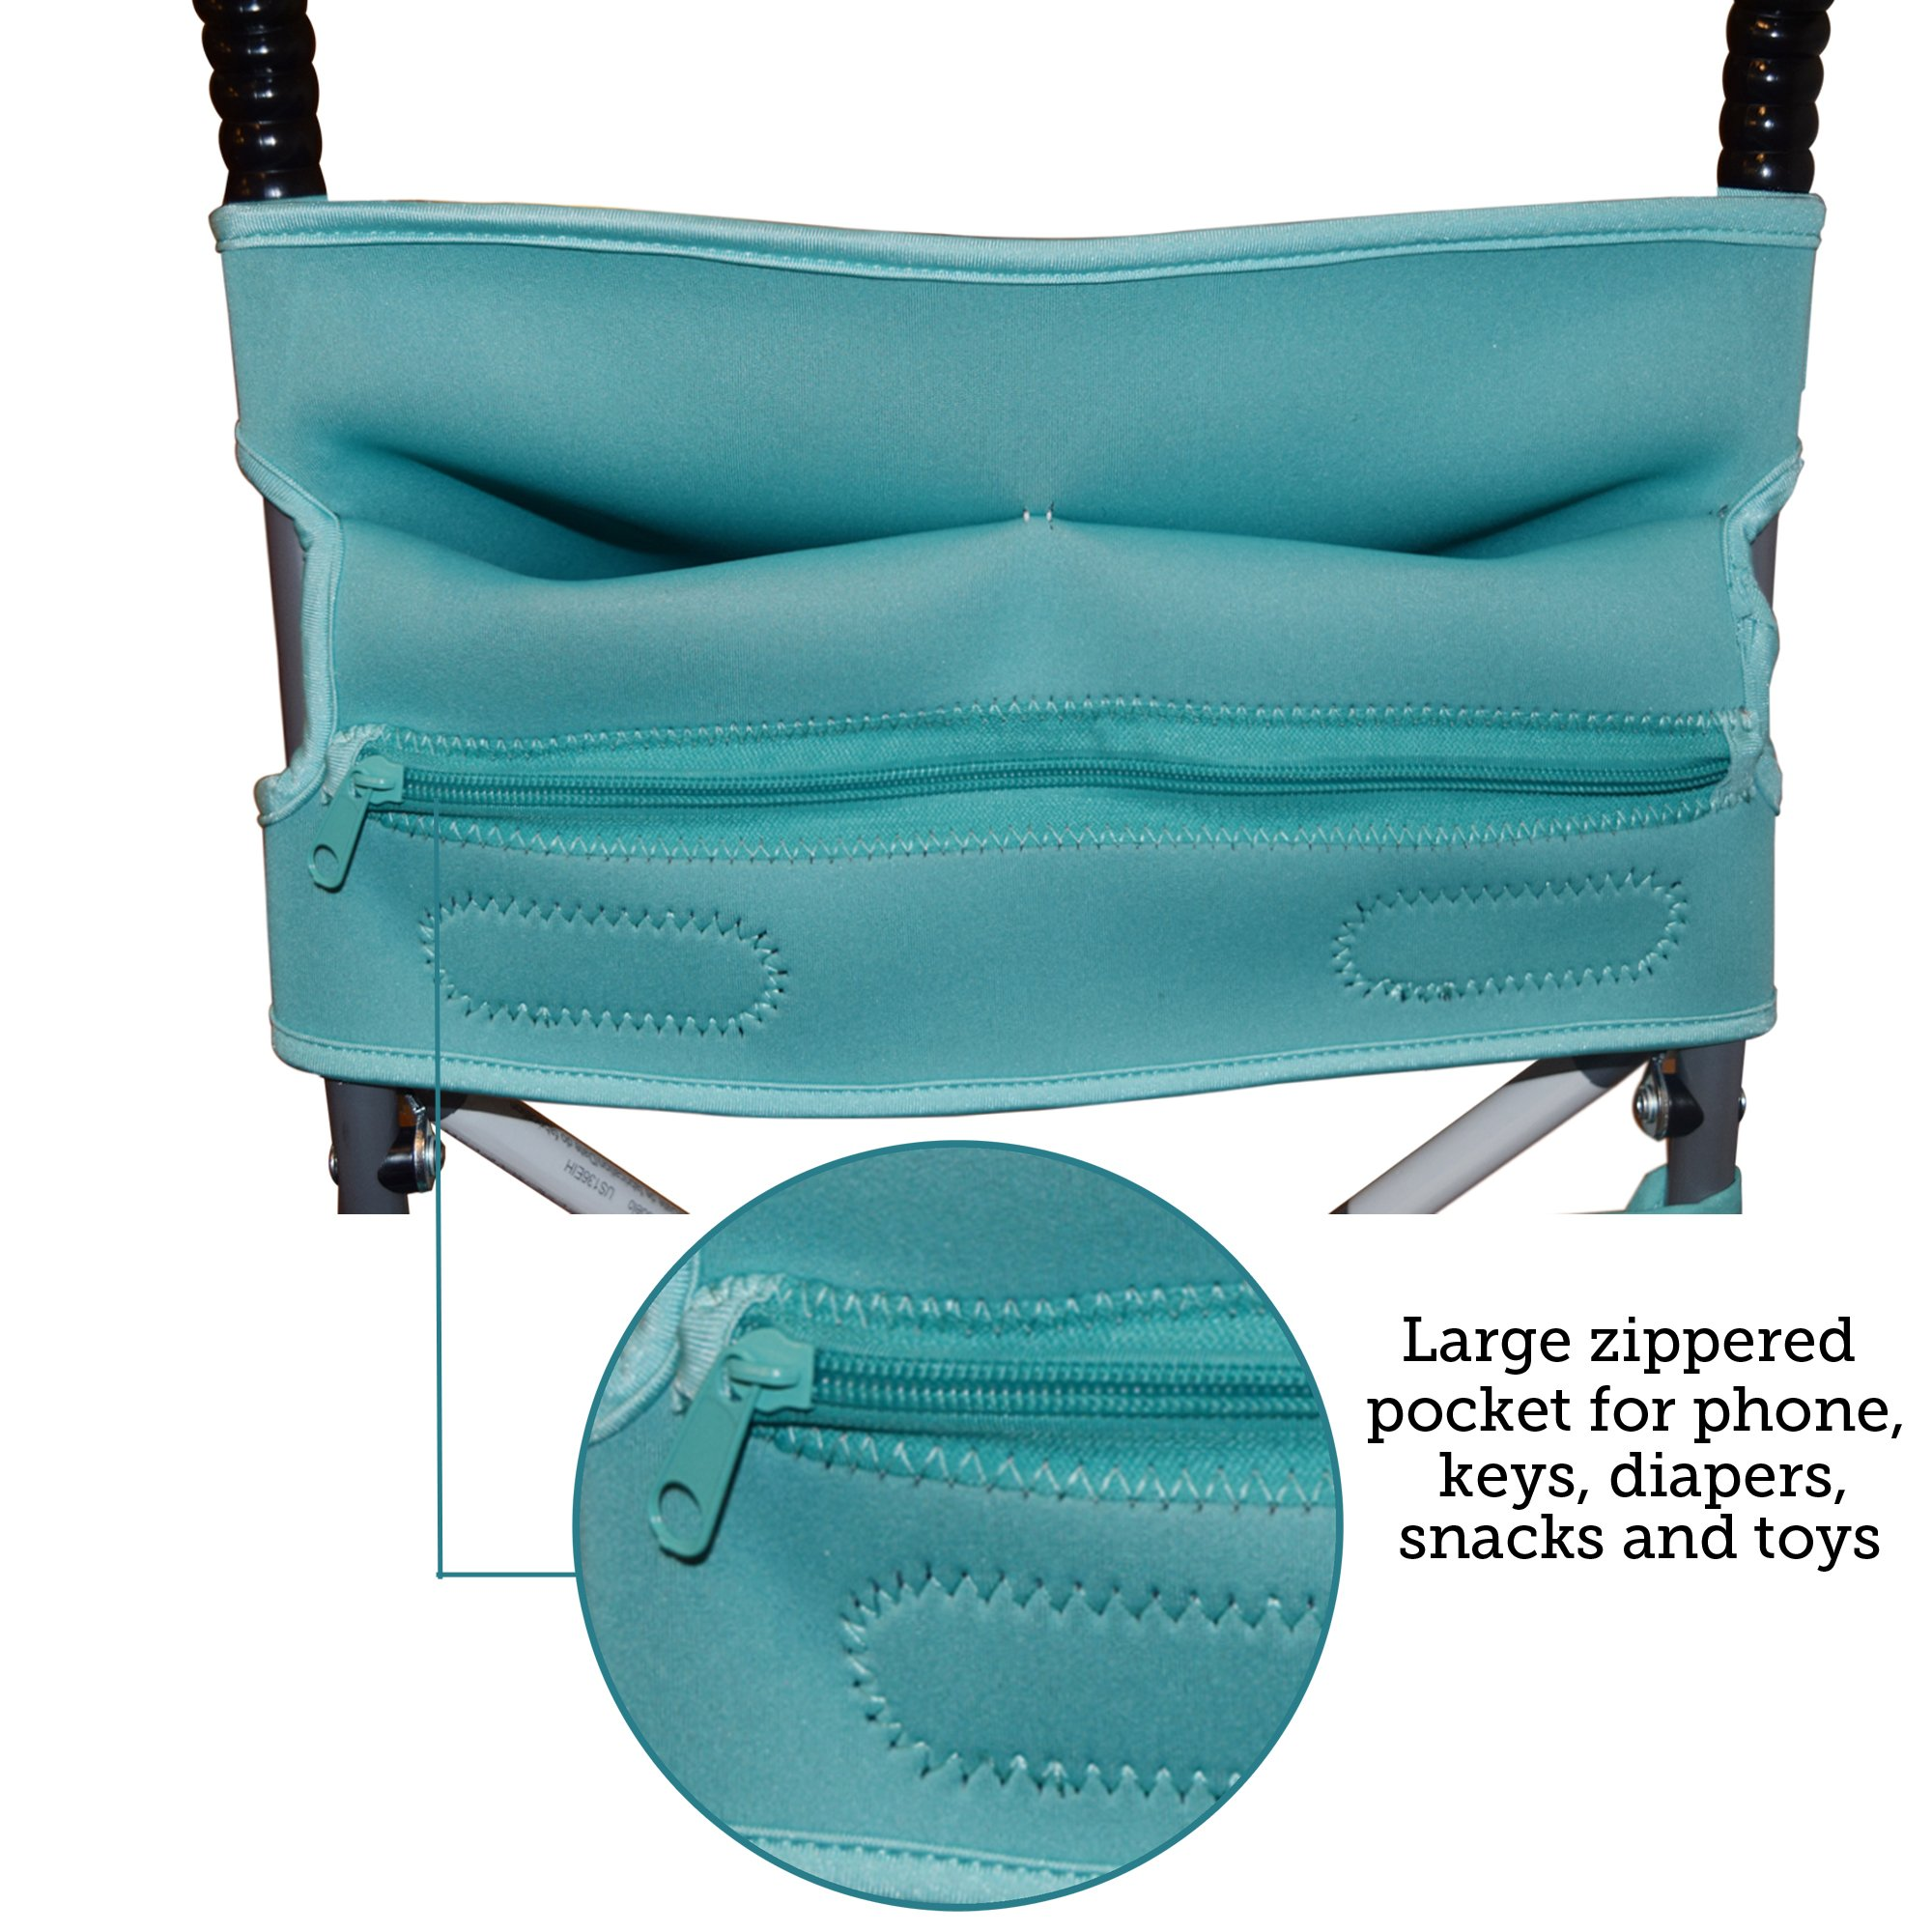 Baby Stroller Caddy Storage Organizer - Cup, Bottle and Diaper Holder for Stroller Accessories Bag - Universal Umbrella Stroller Organizer with Cup Holders - Perfect Baby Shower Gift (Turquoise) by Sunshine Nooks (Image #4)